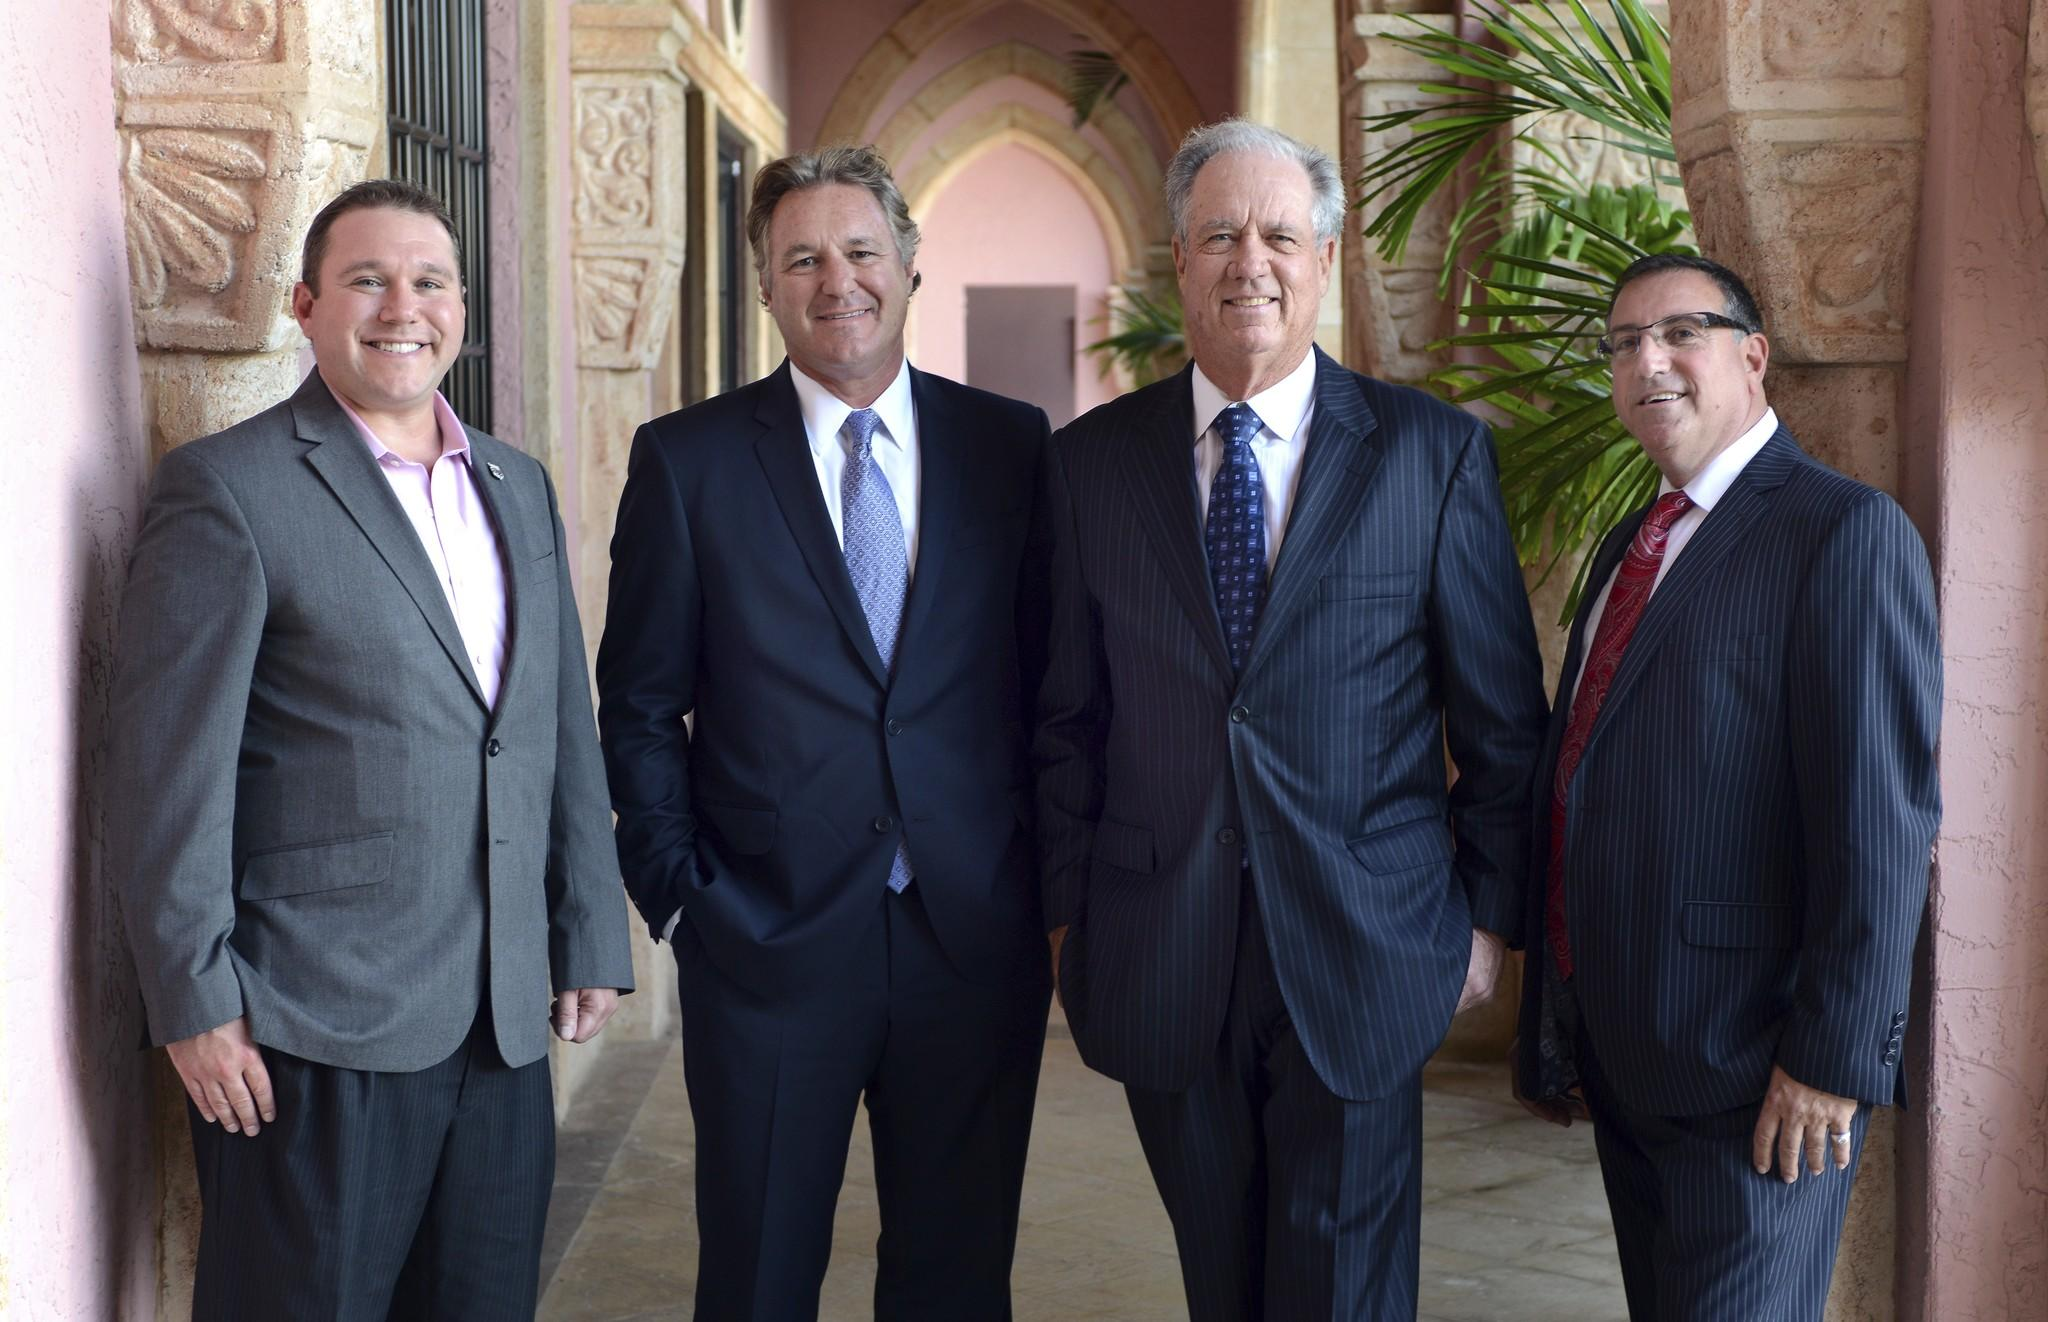 The 2013 Excalibur Award winners are, from left, Daniel Cane, CEO of Modernizing Medicine; Mark Bellissimo, CEO of Equestrian Sport Productions; Phil Smith, Chairman and CEO of Phil Smith Management; Bill Feinberg, president and CEO of Allied Kitchen & Bath.